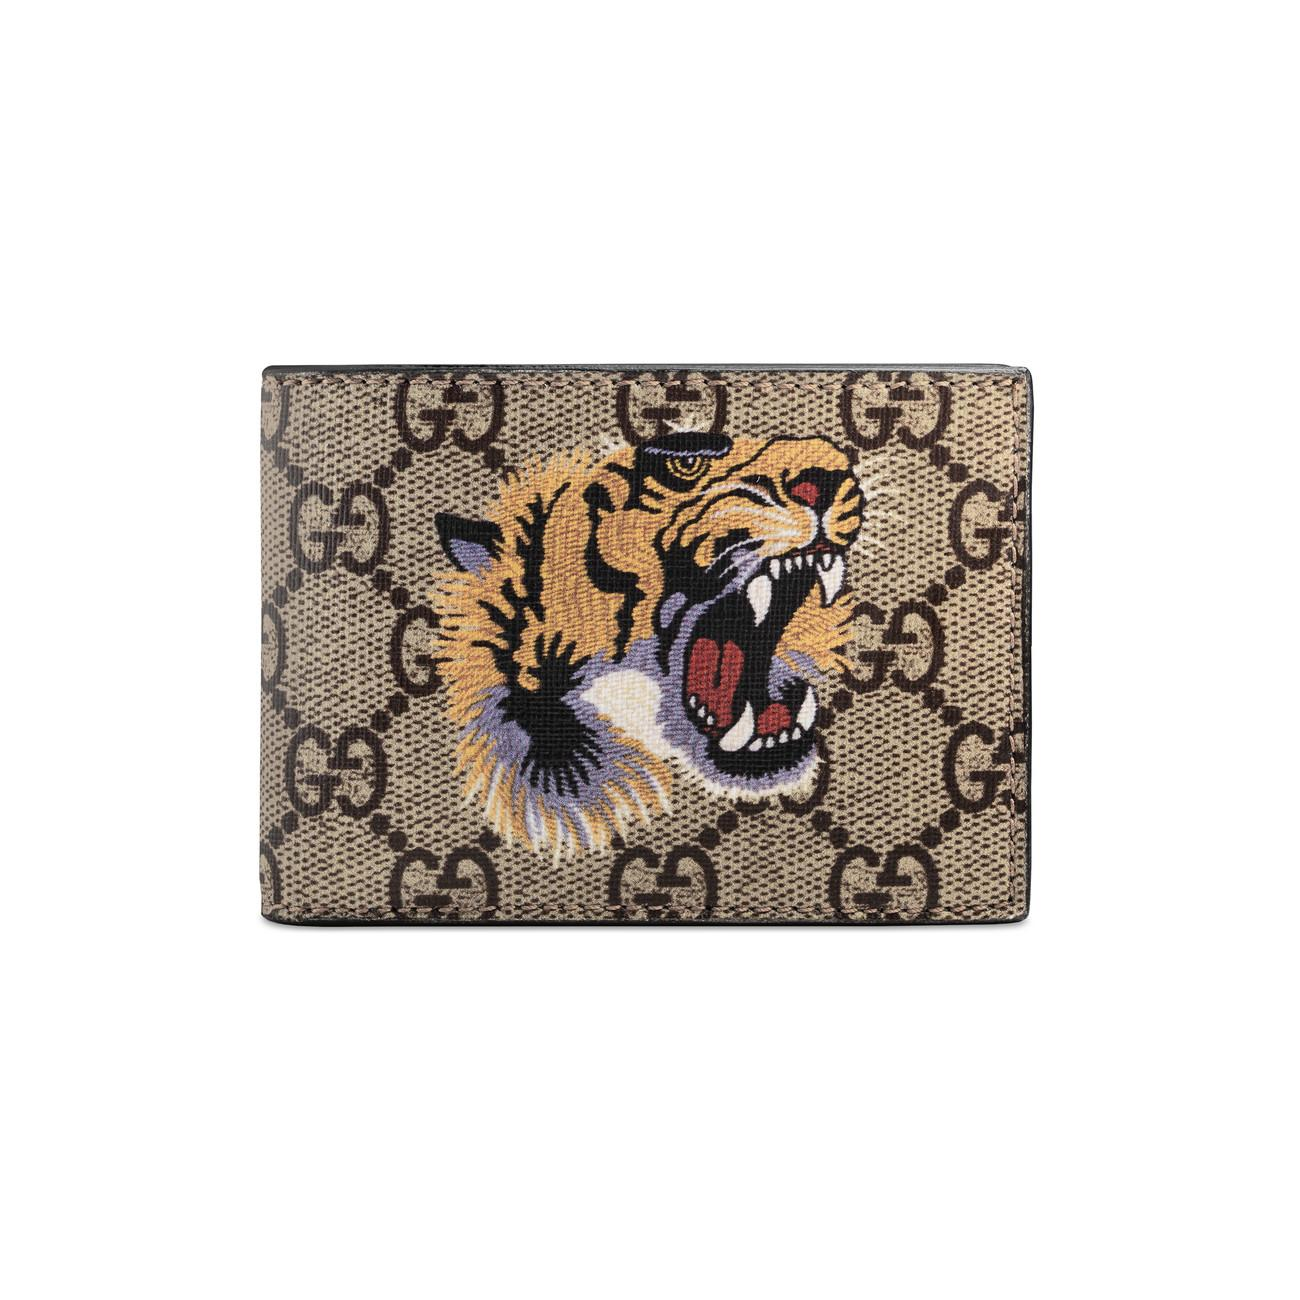 6243d2a6e50 Lyst - Gucci Tiger Print GG Supreme Wallet for Men - Save 11%